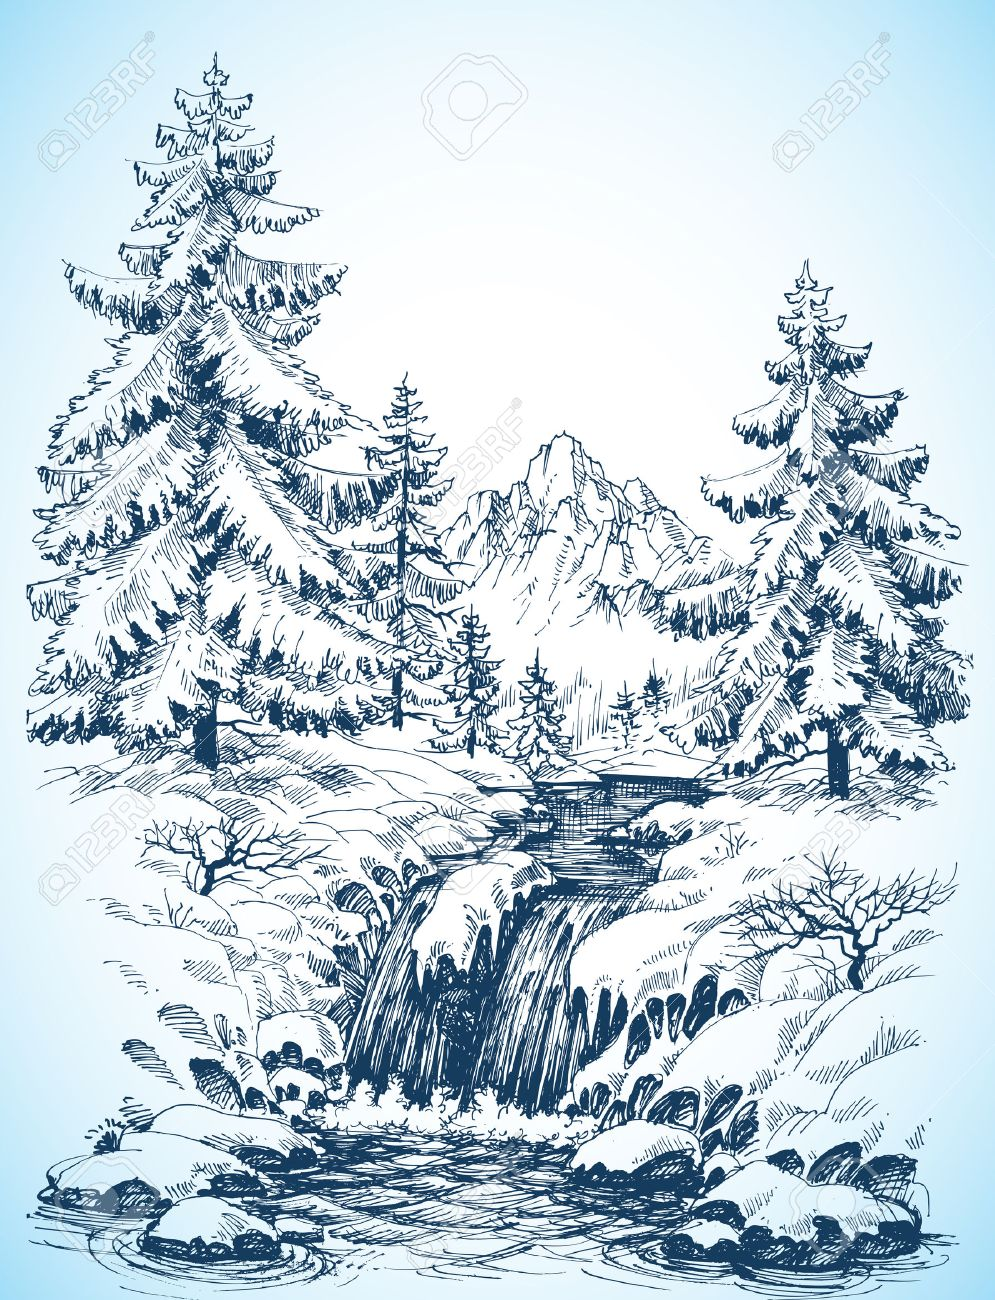 995x1300 Winter Snowy Landscape, Pine Forest And River In The Mountains